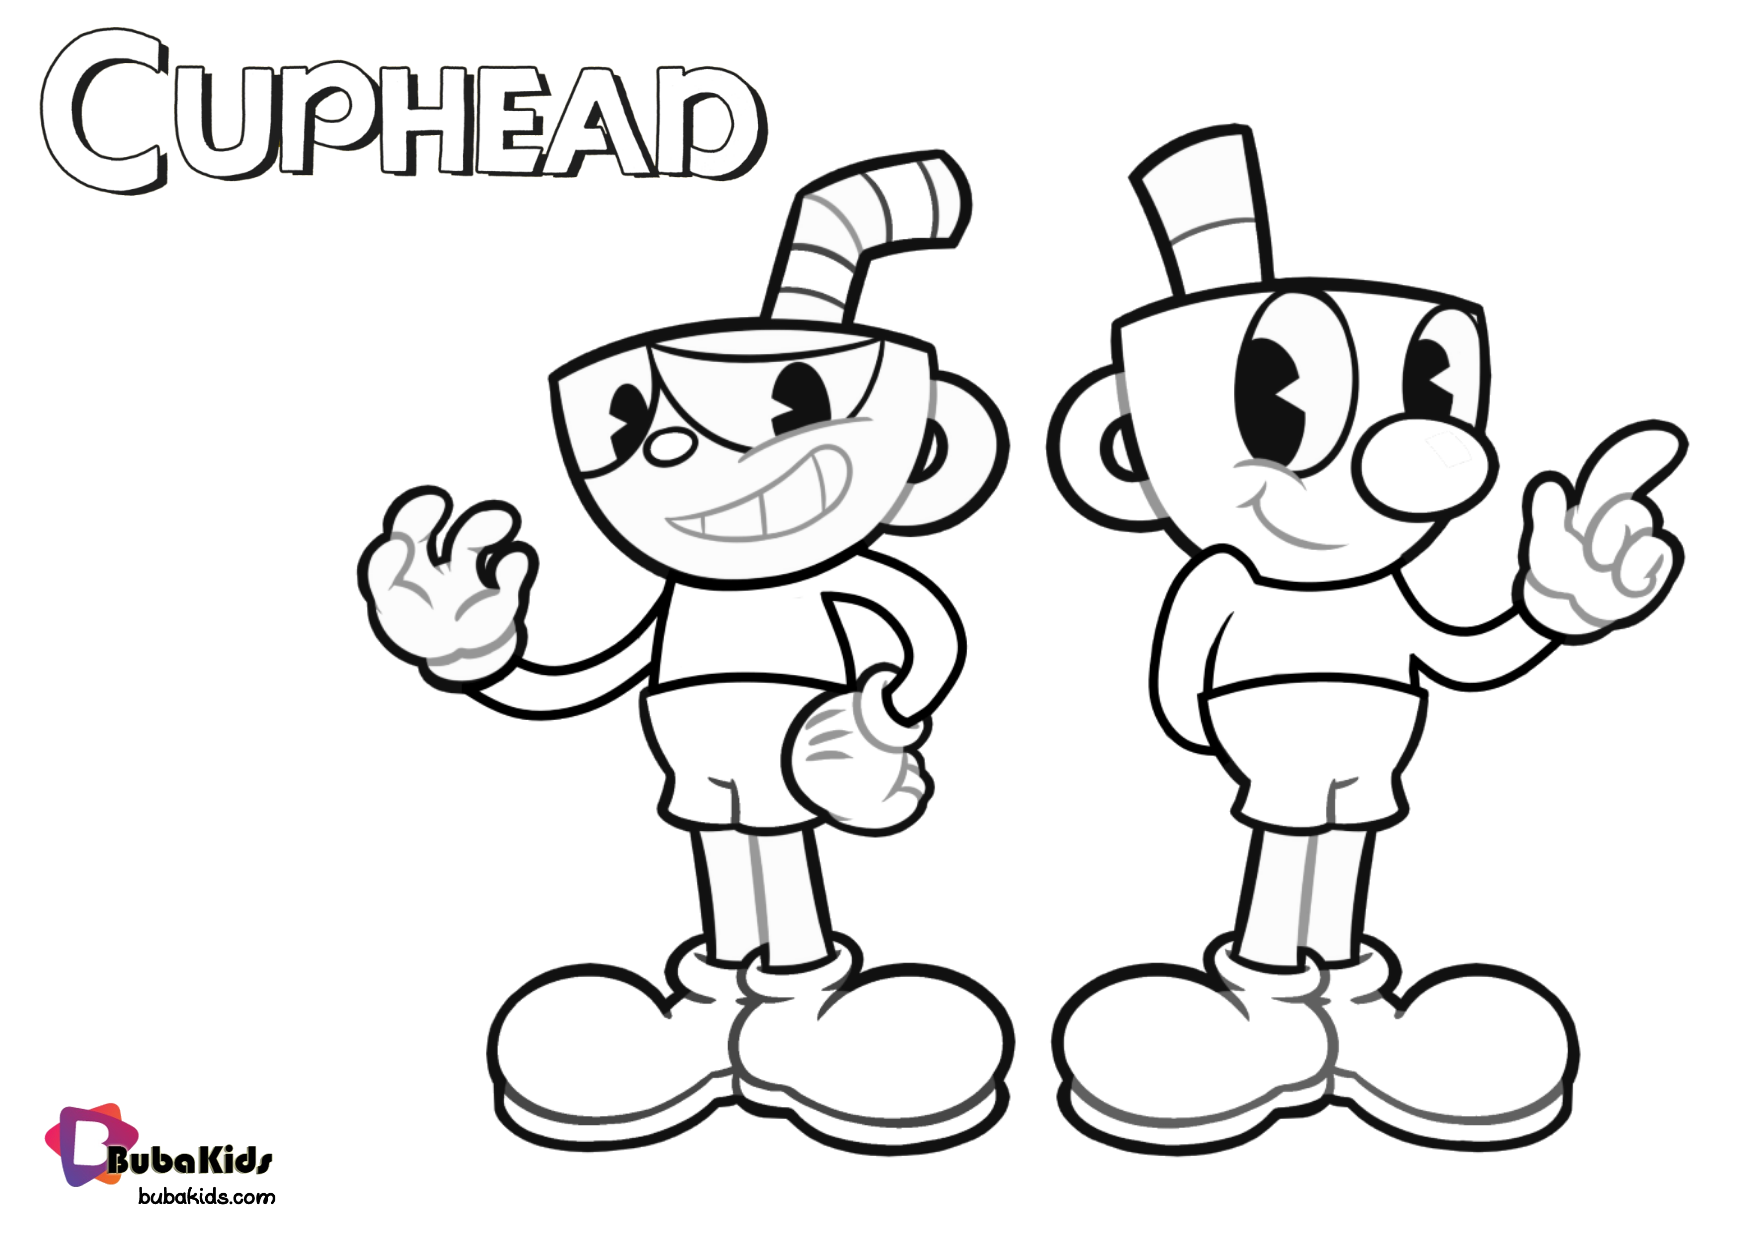 Cuphead Printable Coloring Page Collection Of Cartoon Coloring Pages For Teenage Printable That Yo In 2021 Printable Coloring Pages Coloring Pages Coloring Book Pages